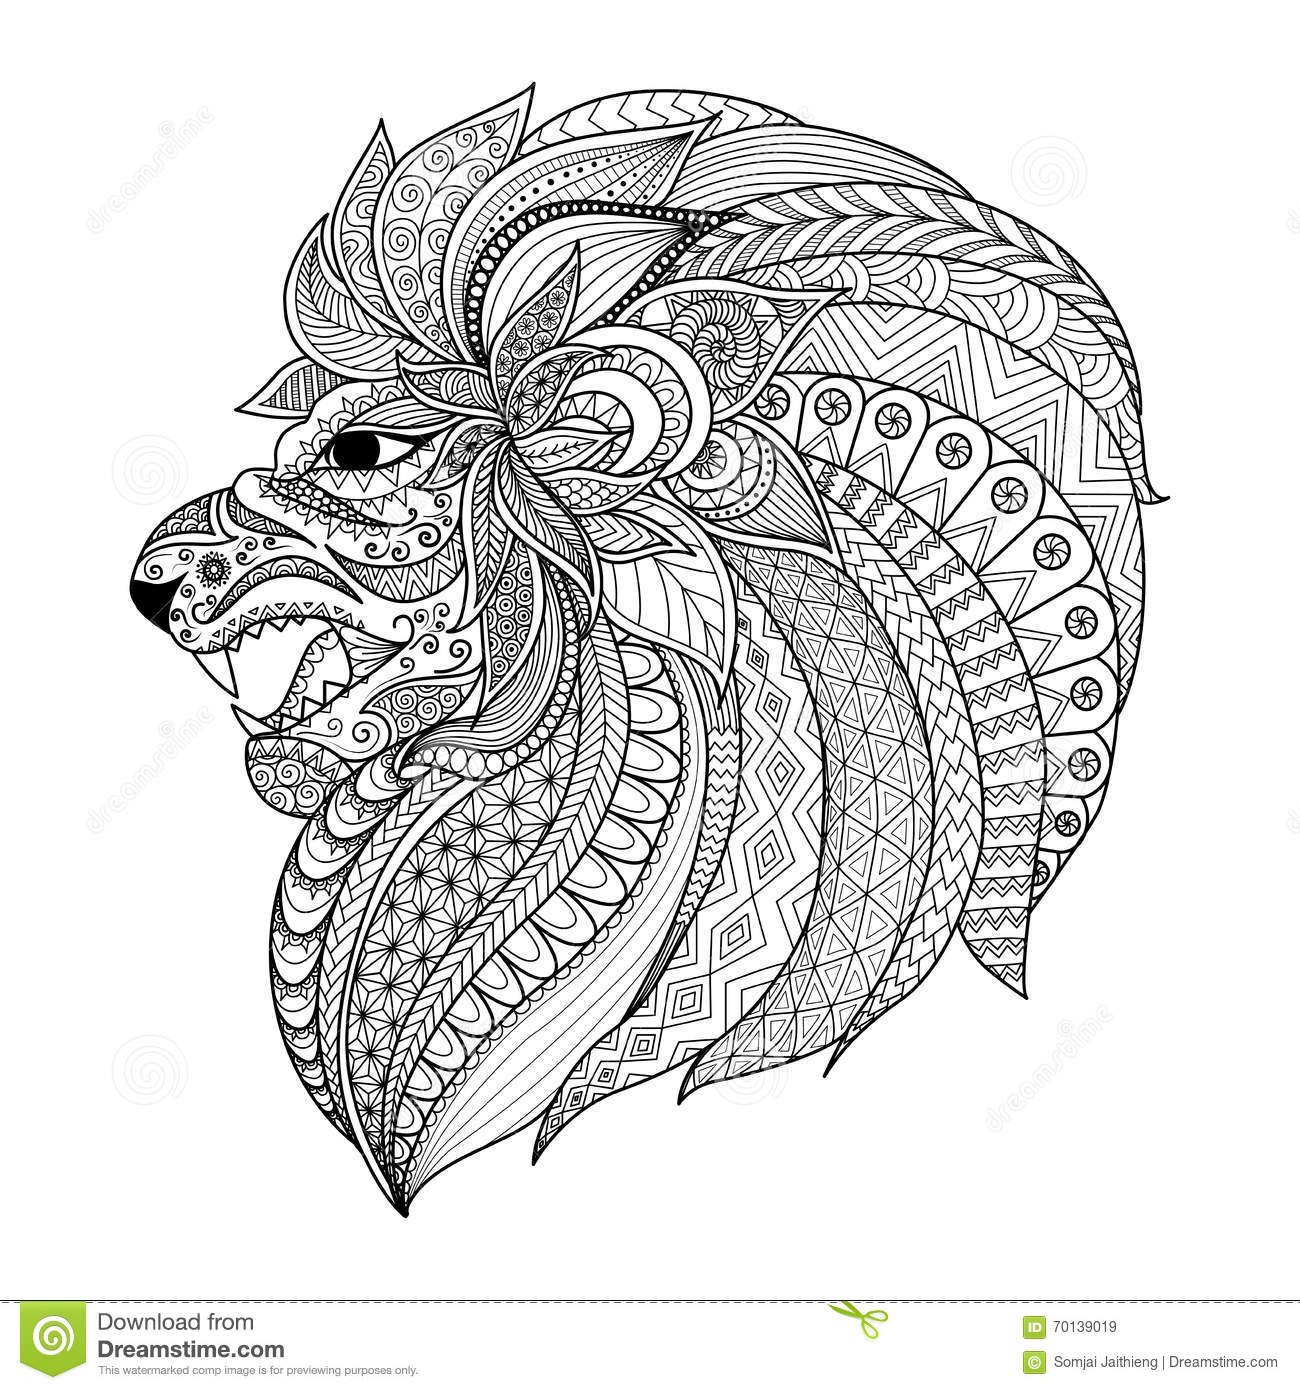 Detailed Zentangle Stylized Lion For T Shirt Graphic Coloring Book Pages For Adult Cards